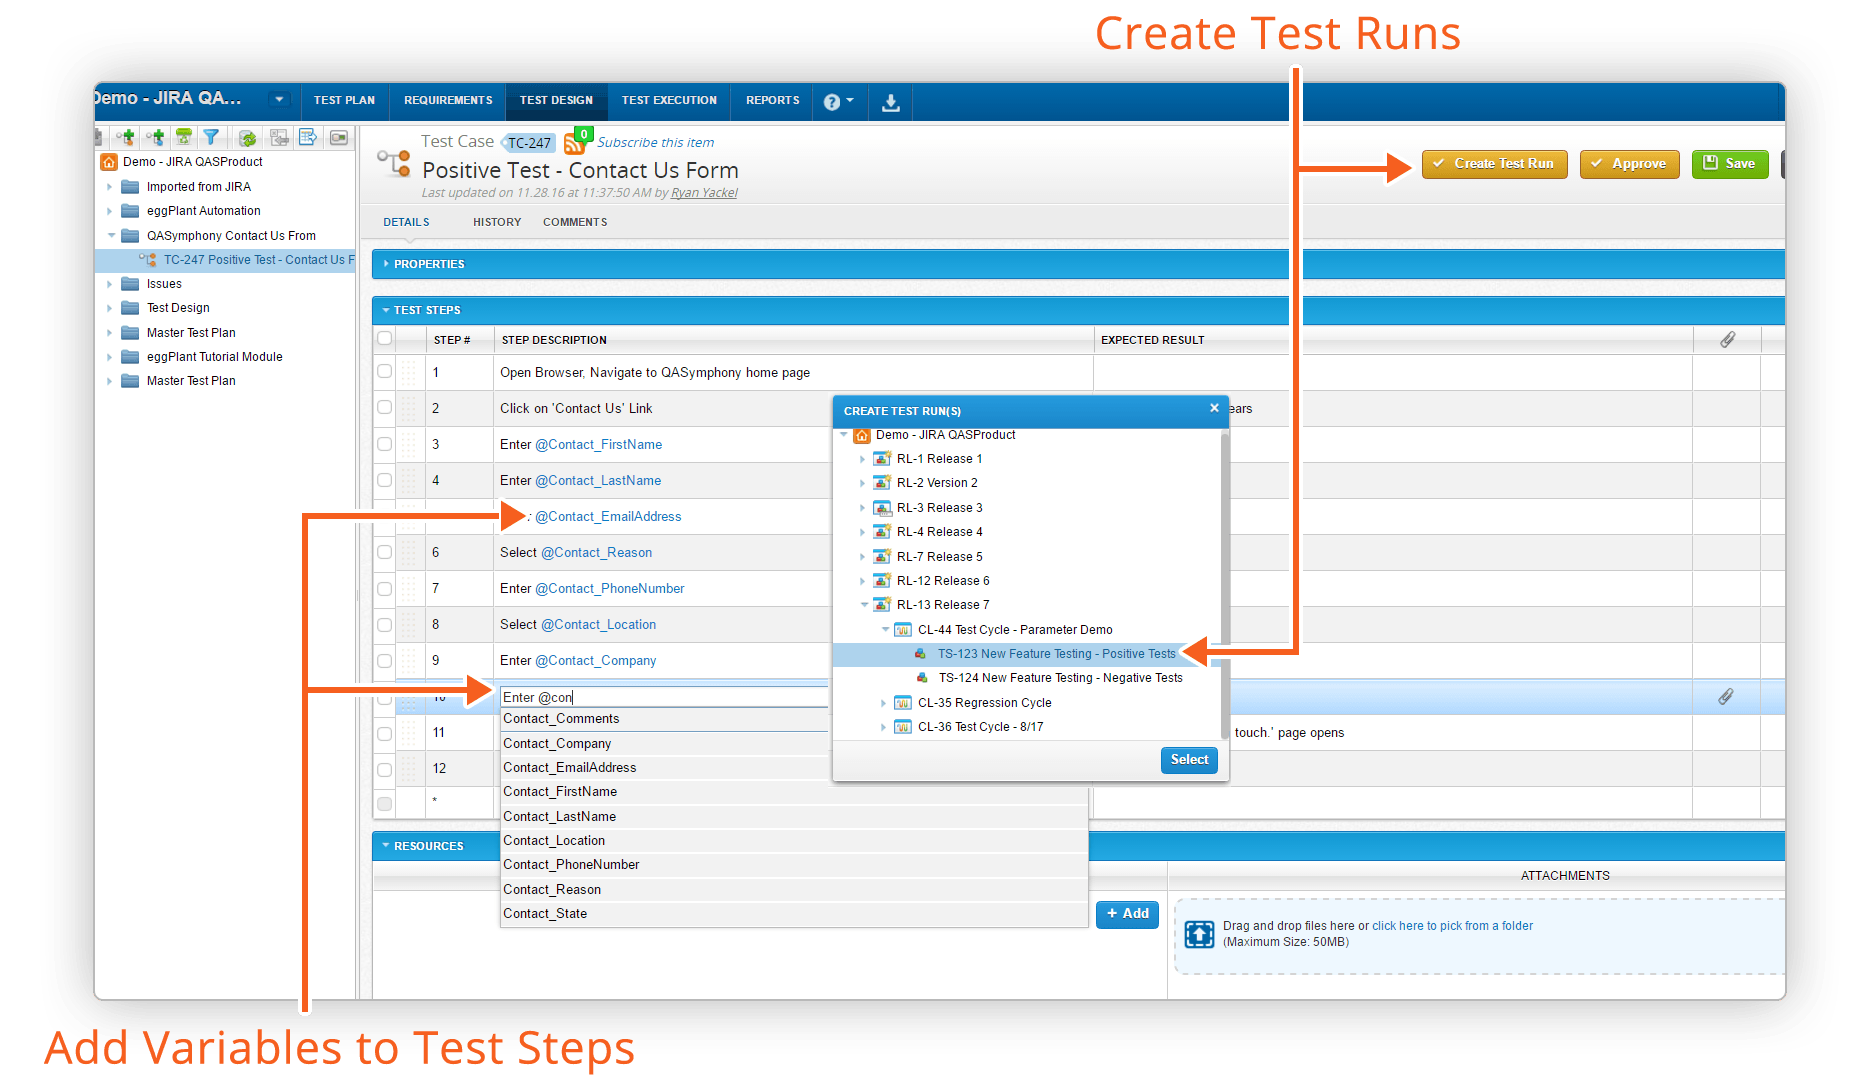 create-test-runs-with-variables